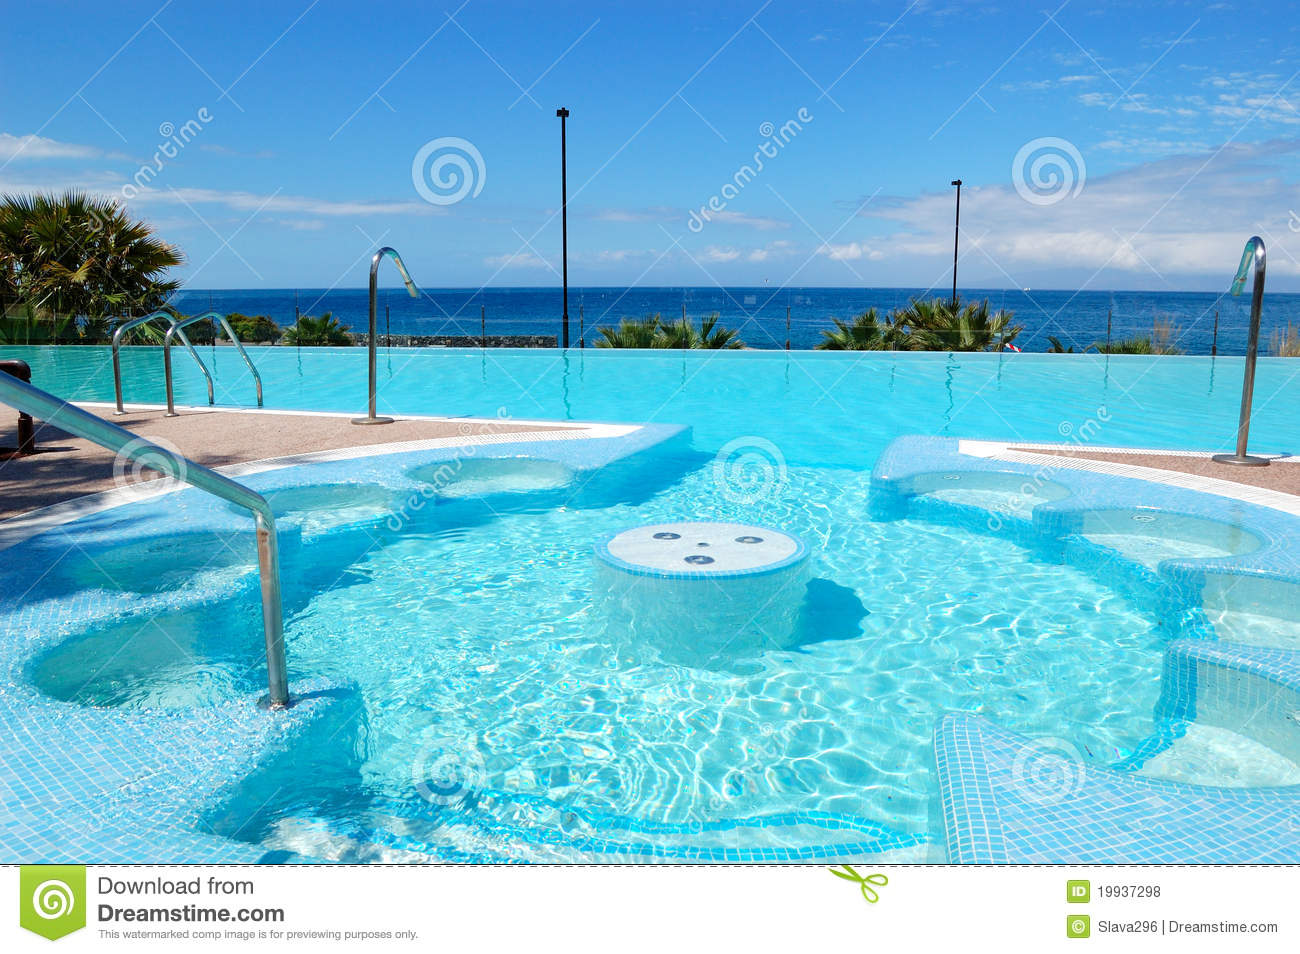 Swimming Pool With Jacuzzi At Luxury Hotel Royalty Free